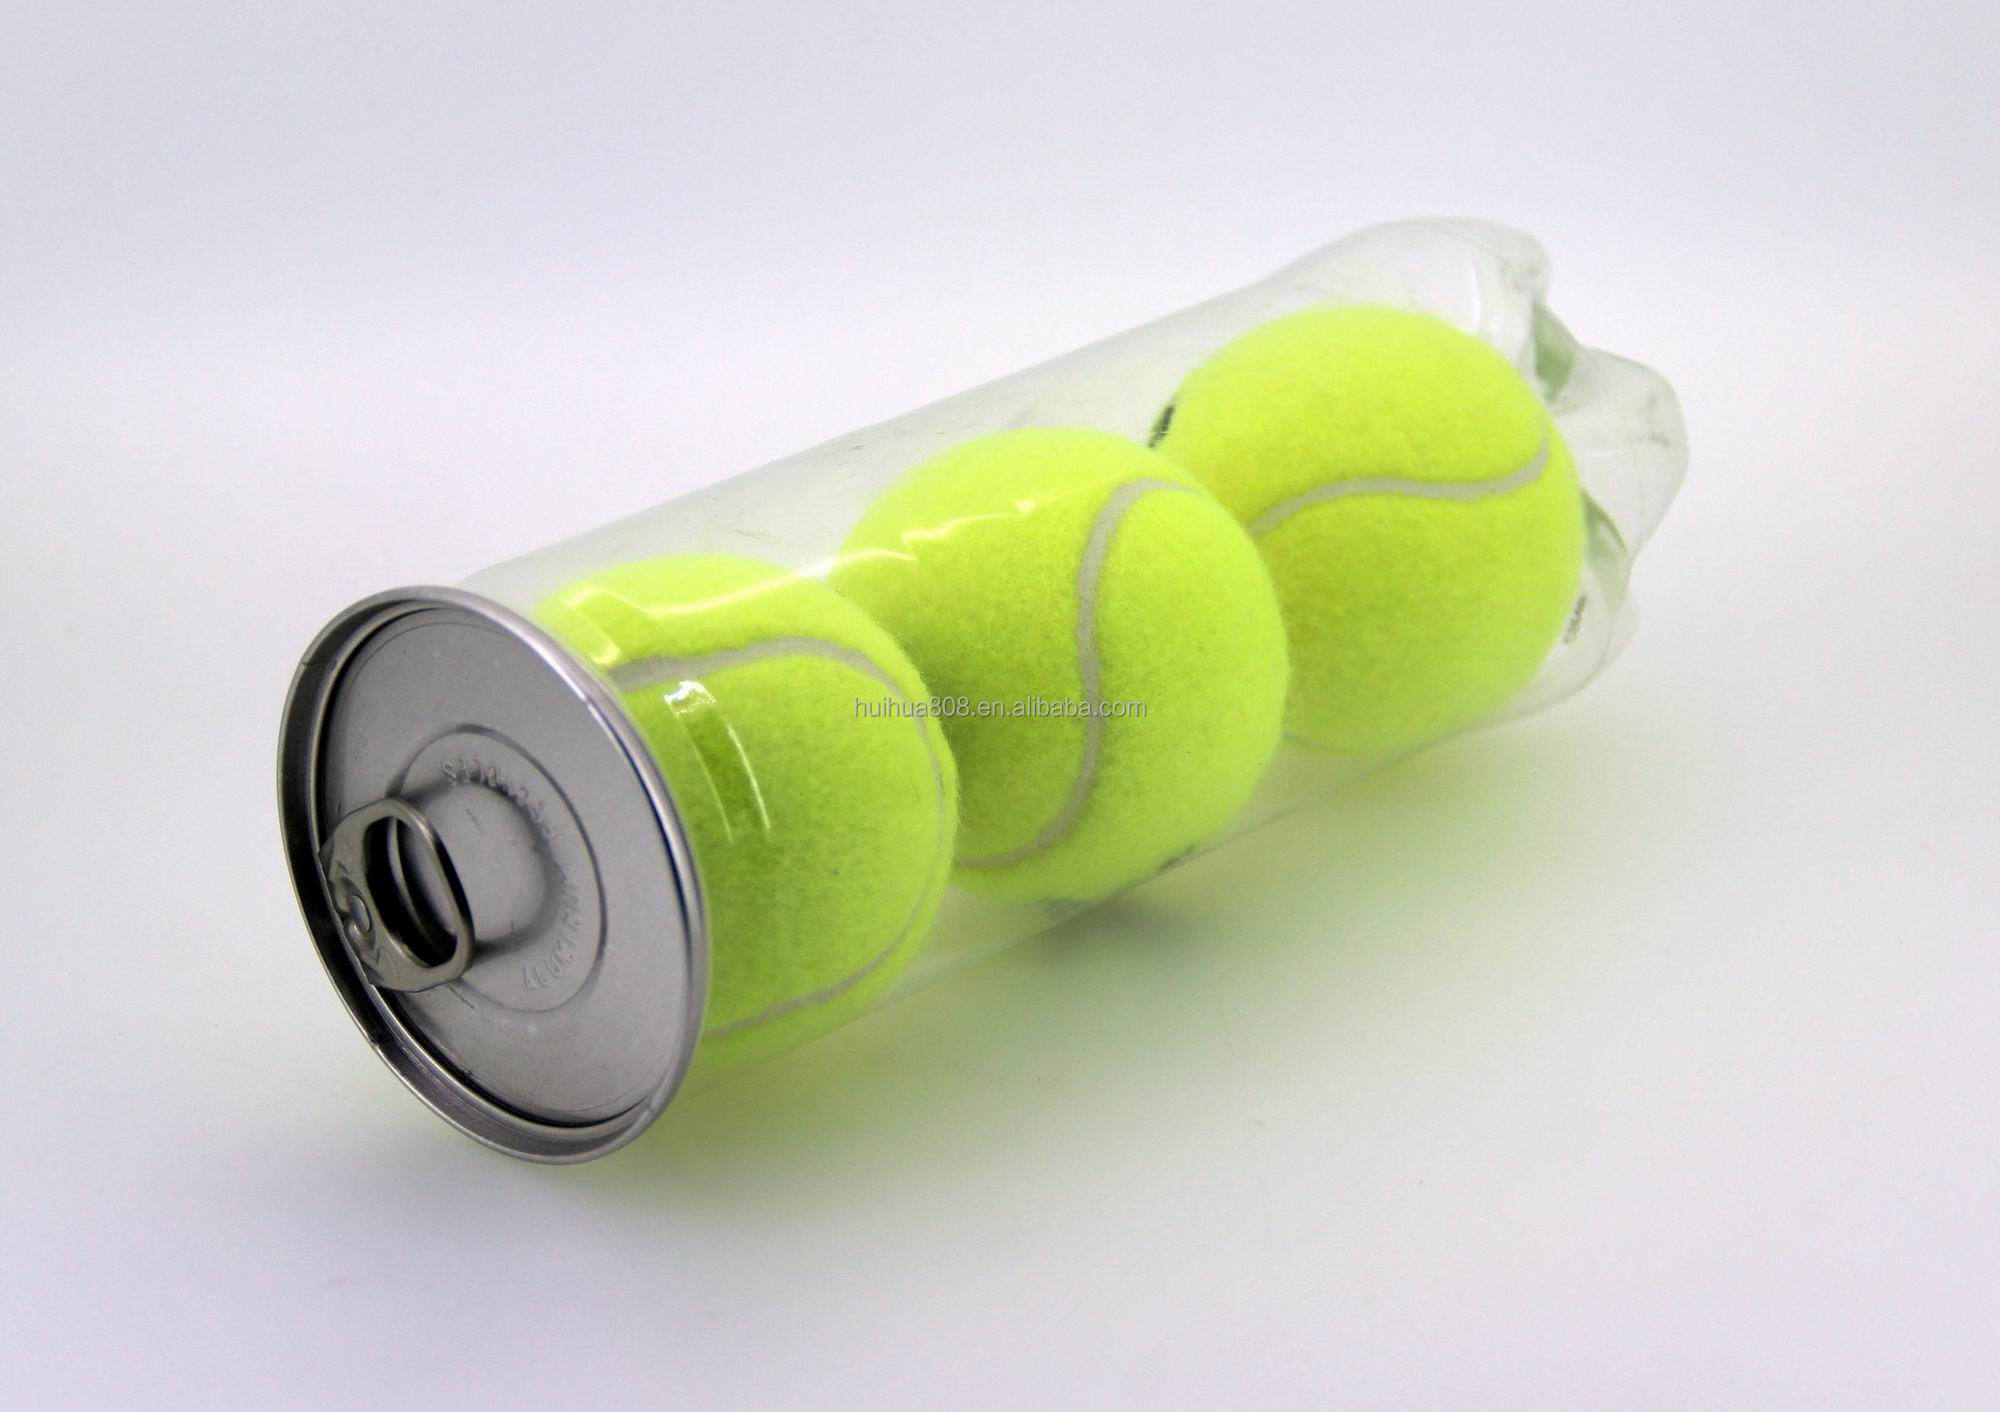 PET transparent plastic tennis ball can